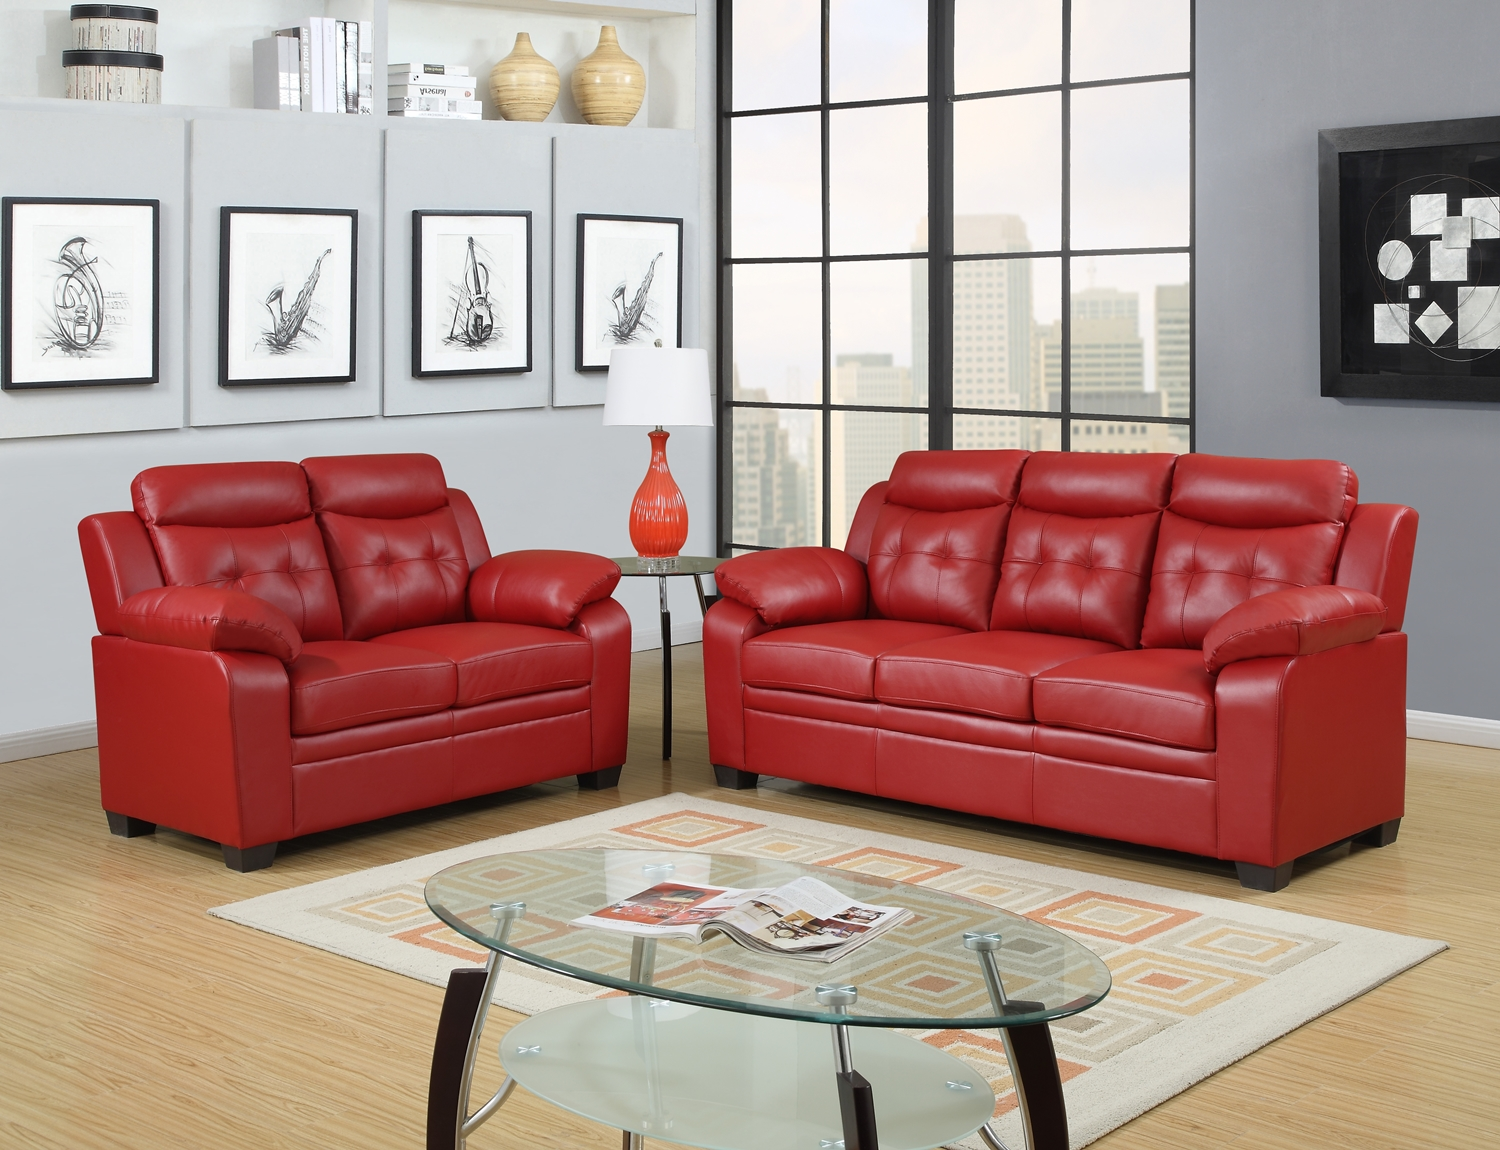 Best Red Apartment Sized Casual Contemporary Bonded Leather Living Room Sofa  Love red sofa set